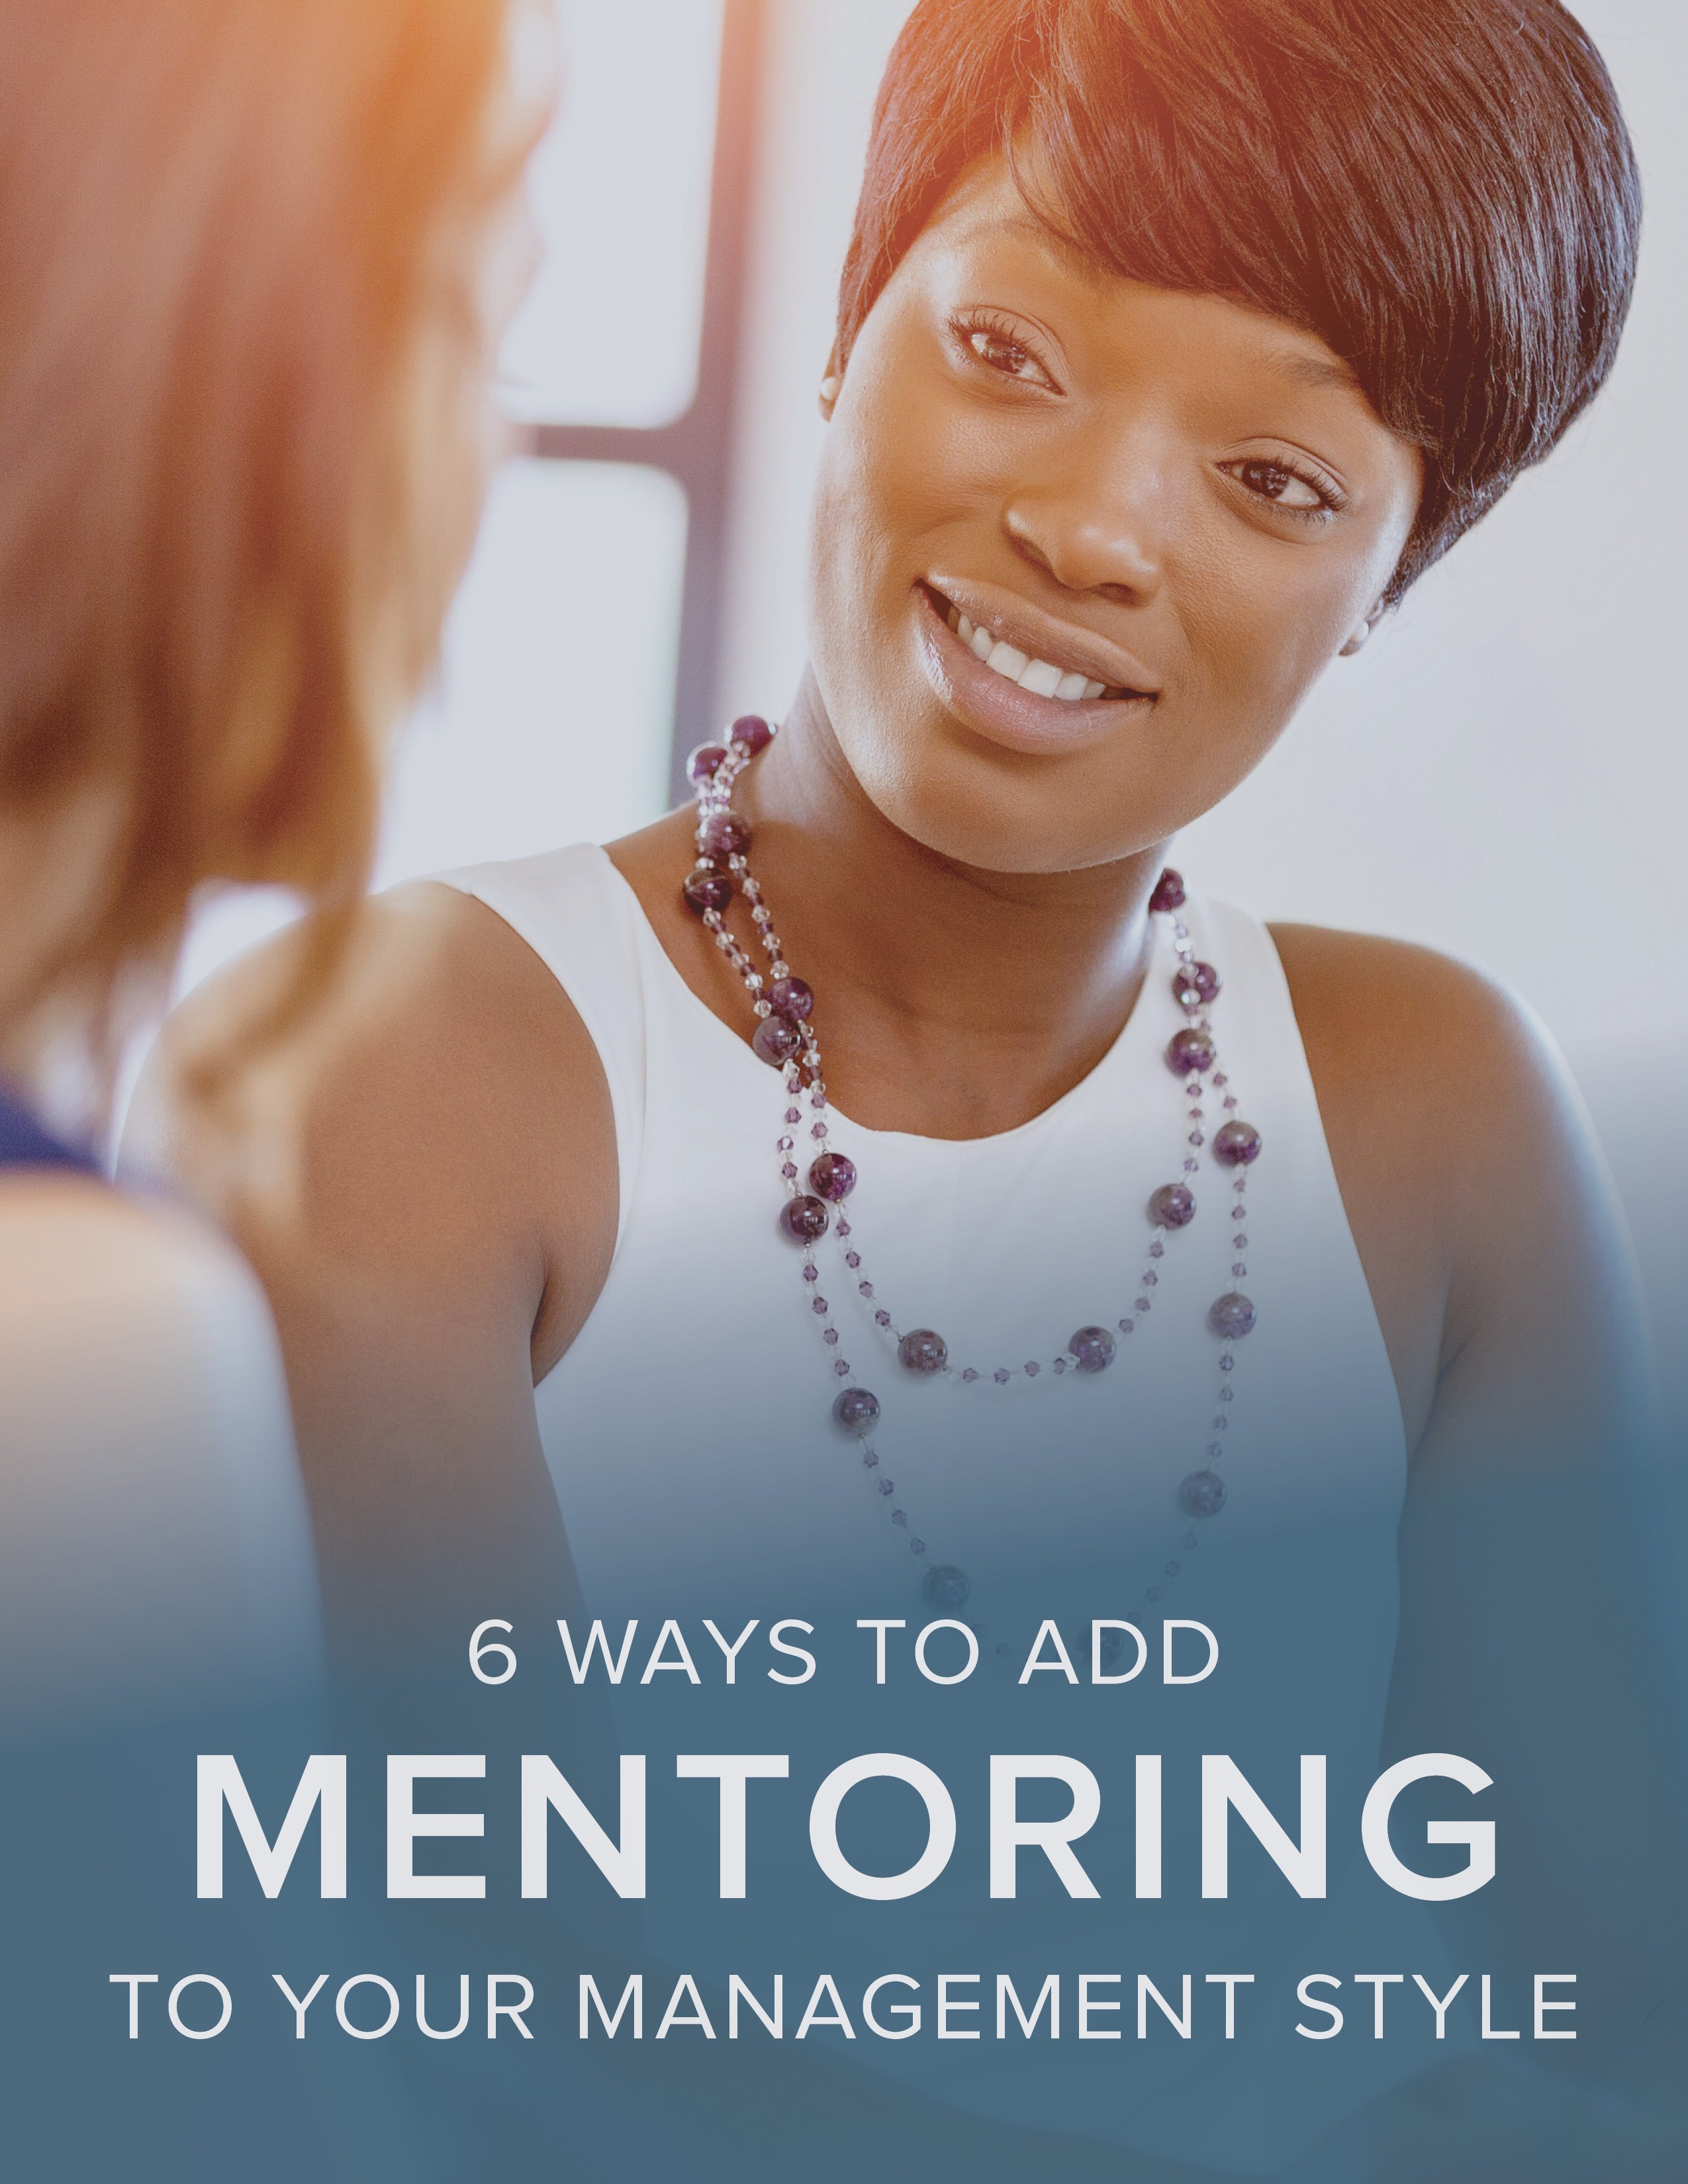 NEOED 6 Ways to Add Mentoring to Your Management Style